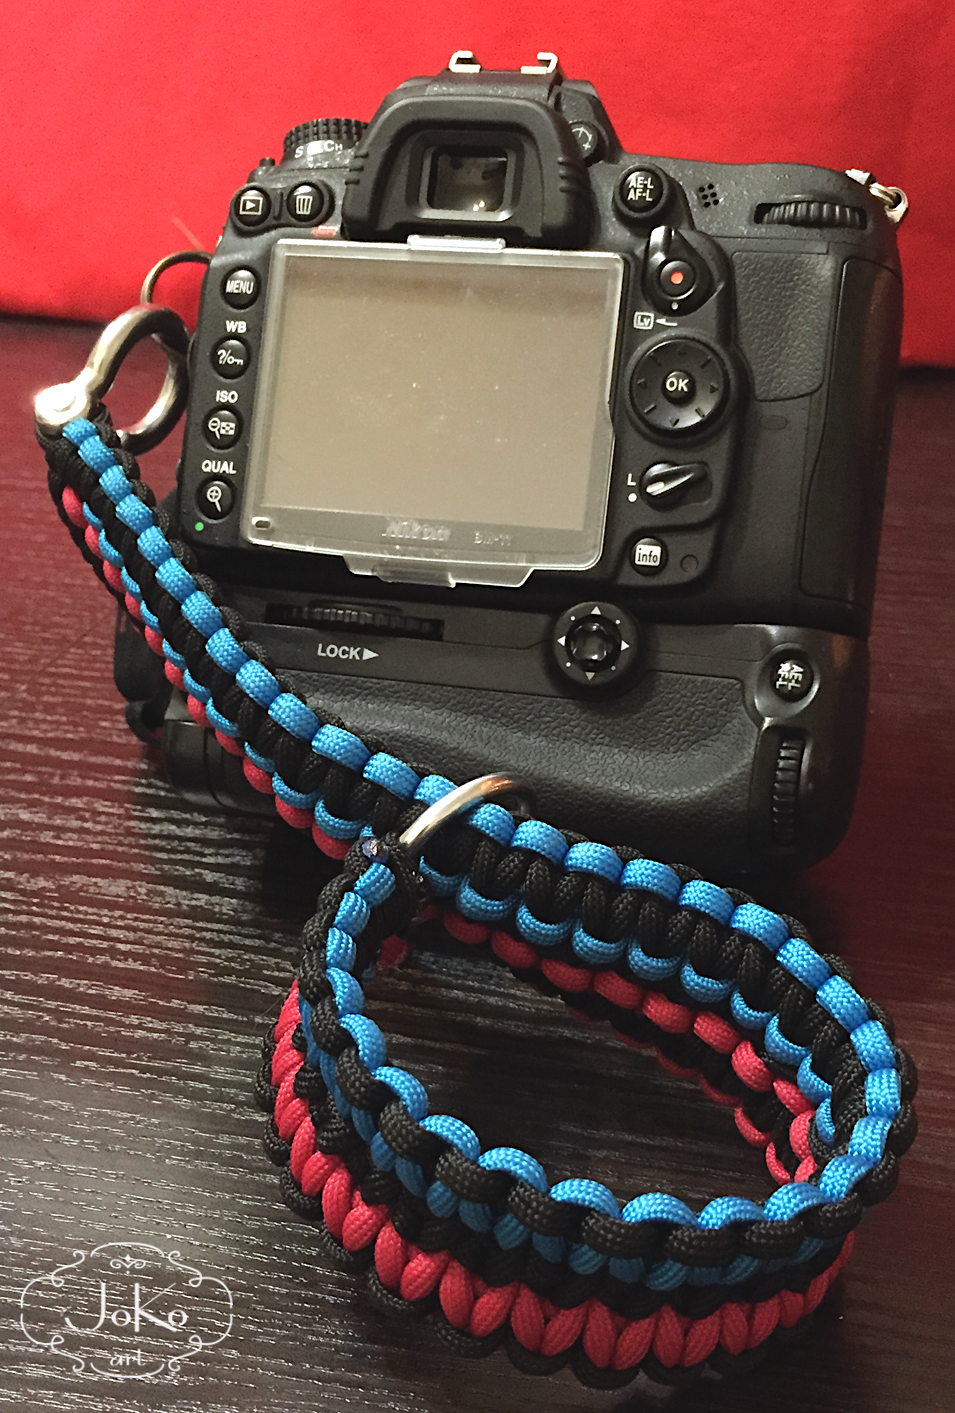 Pasek do aparatu (paracord belt) 01/2015